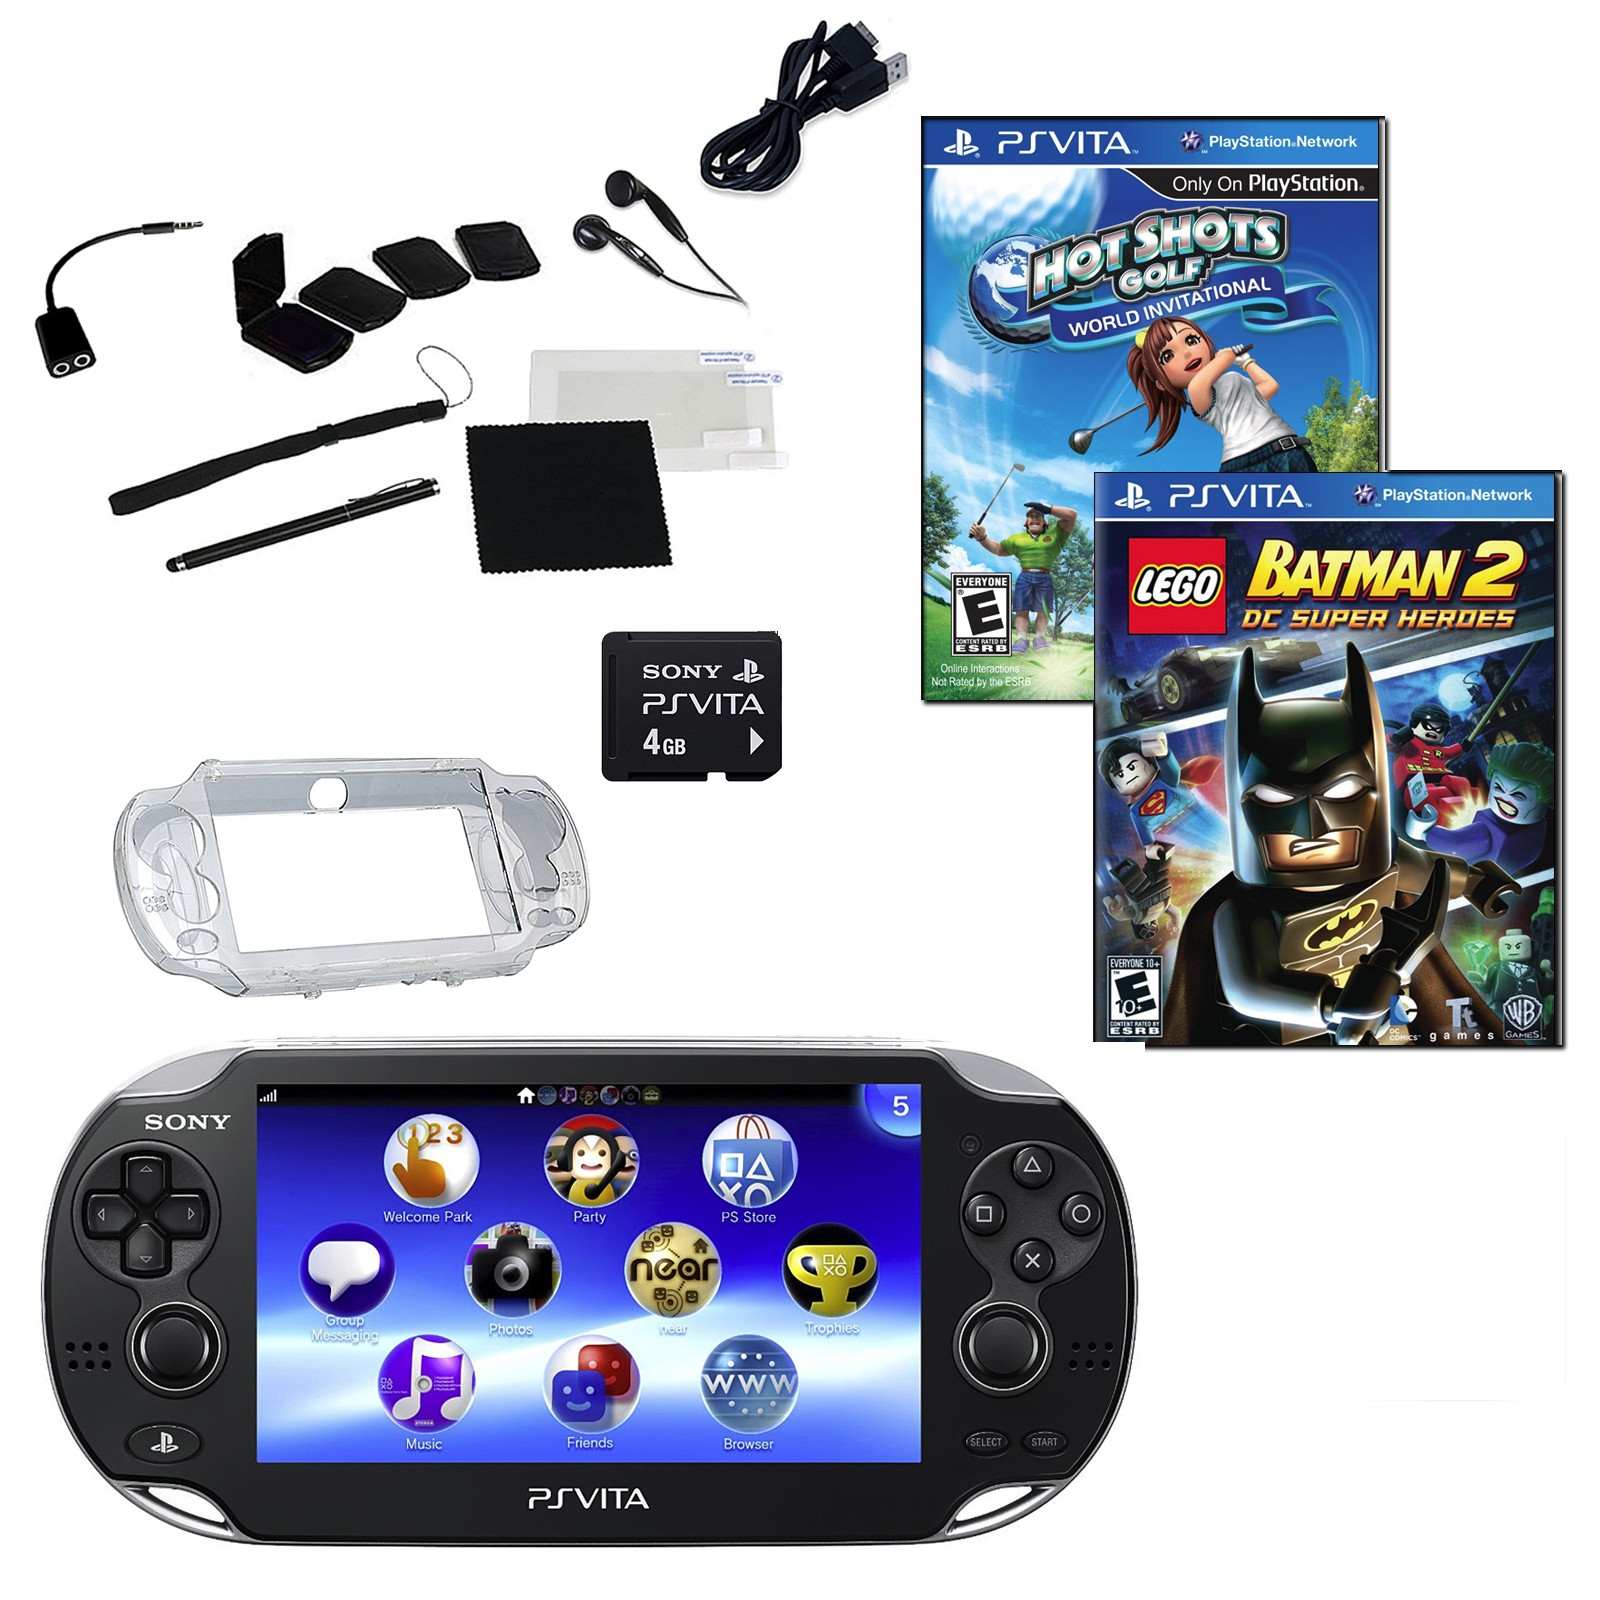 Sony PlayStation Vita Wi-Fi Bundle with 2 Games, Memory Card, and Accessories